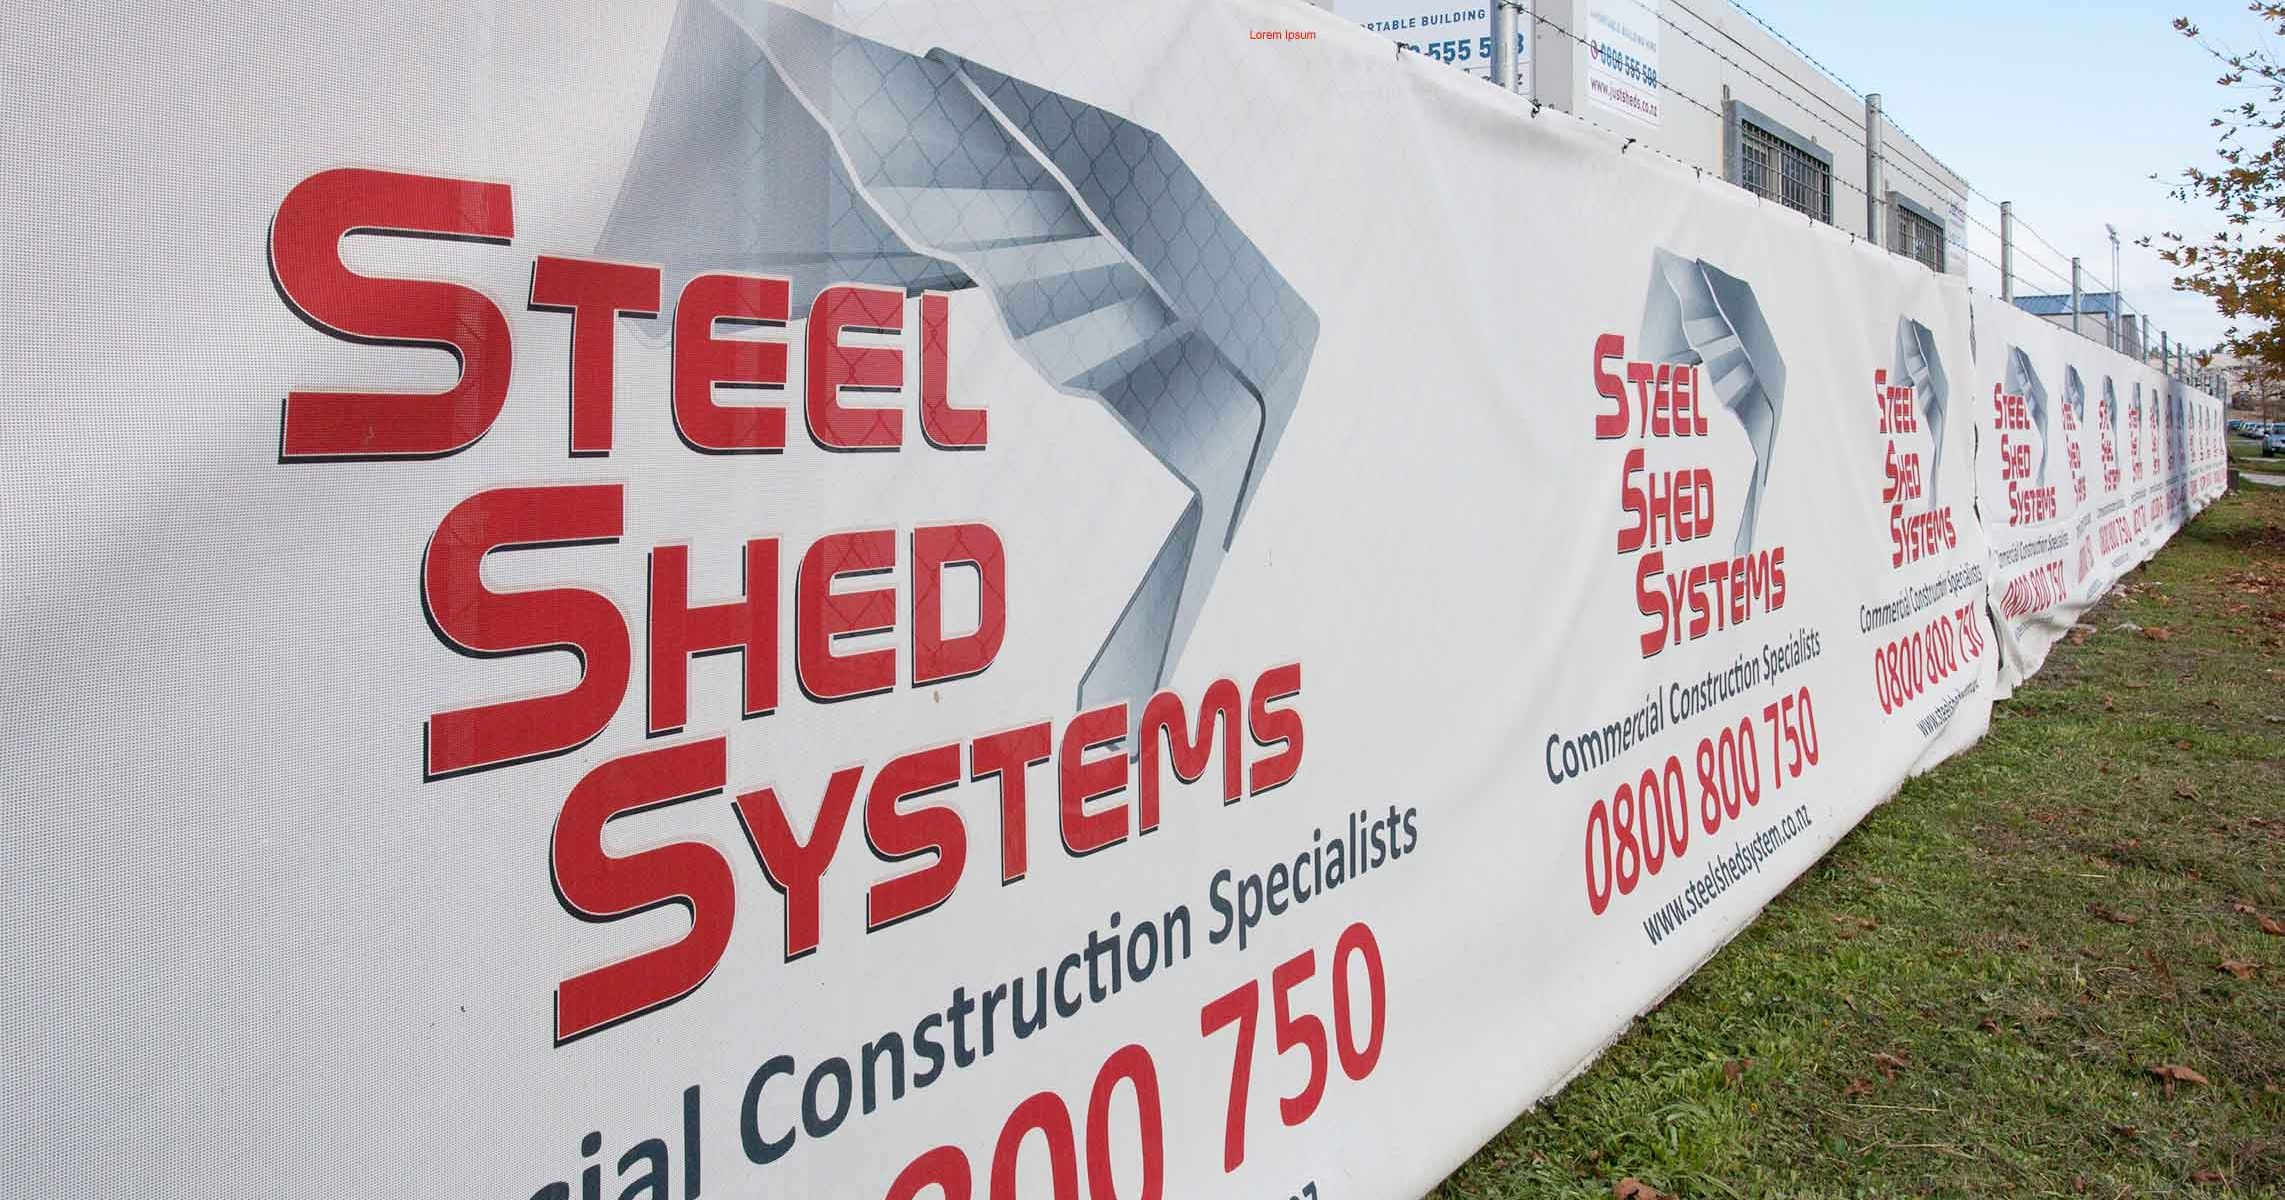 steel shed systems